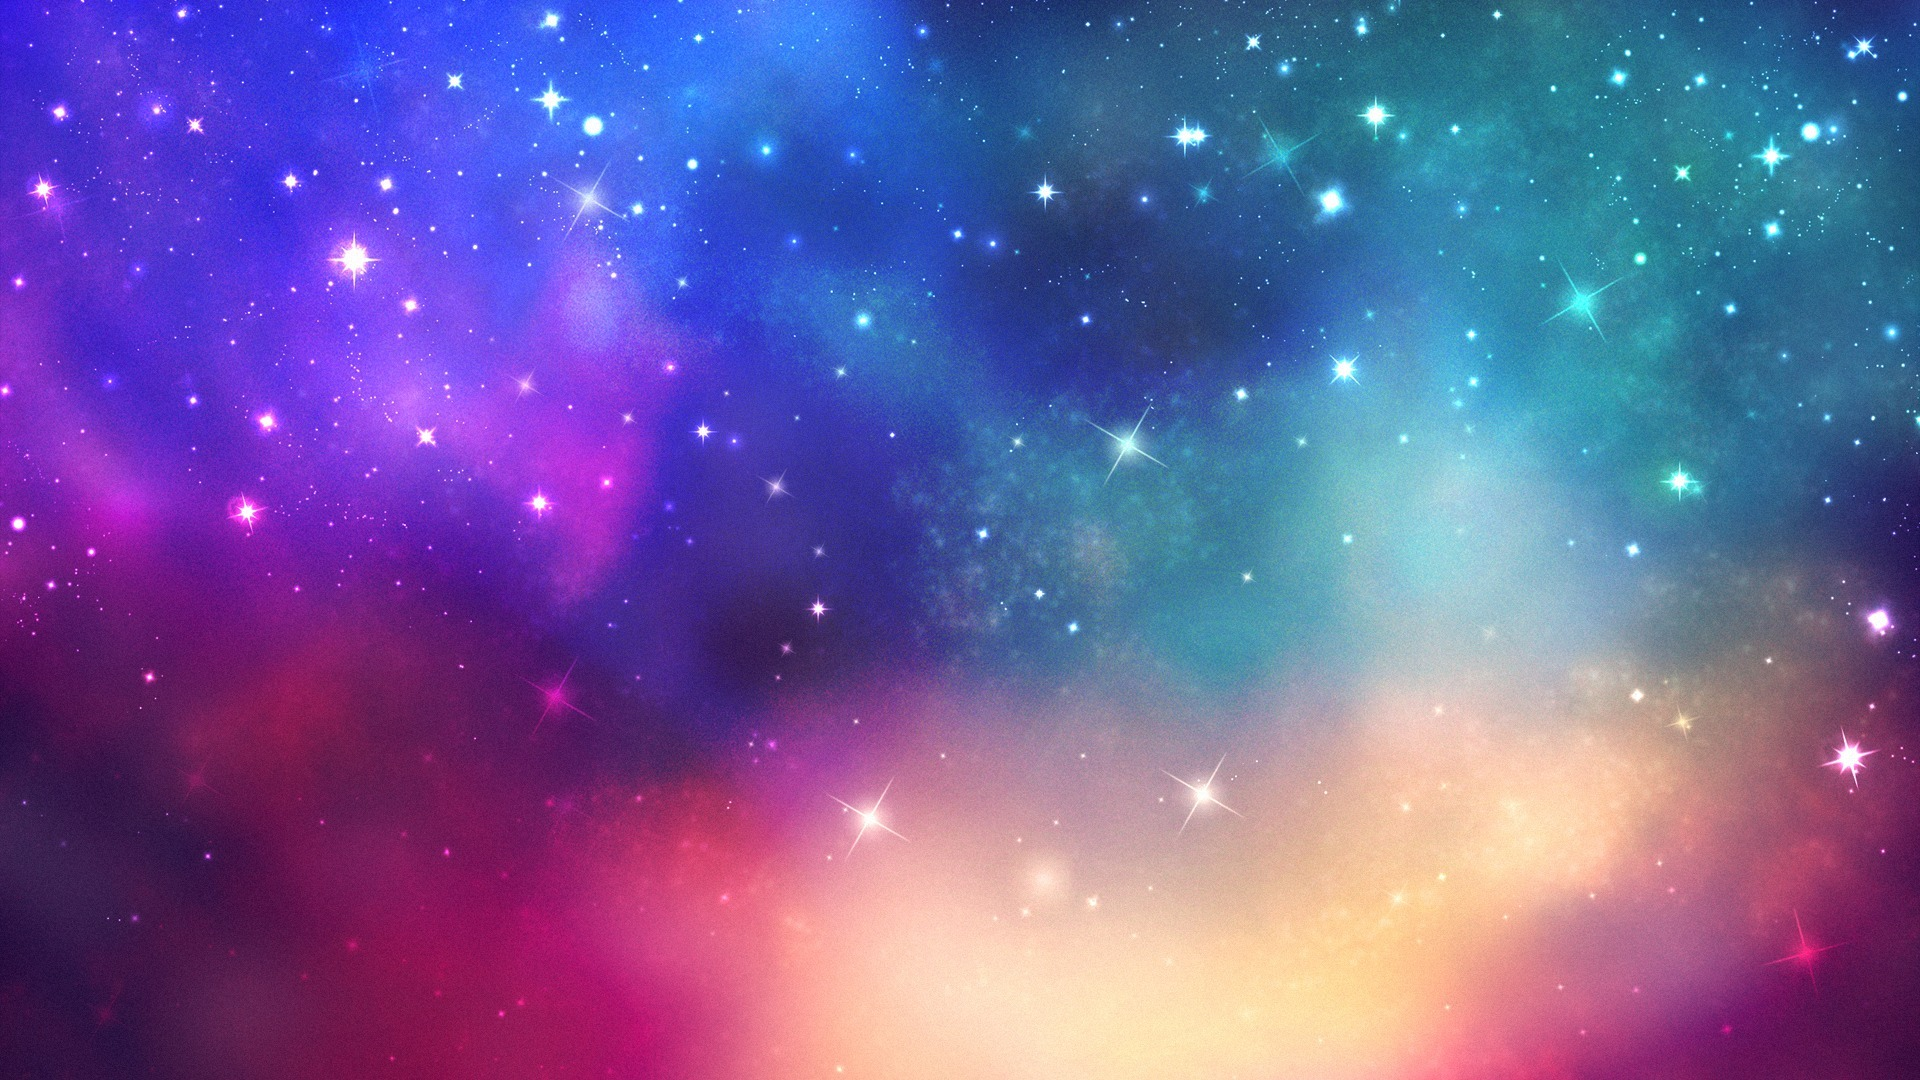 Space Wallpaper Tumblr